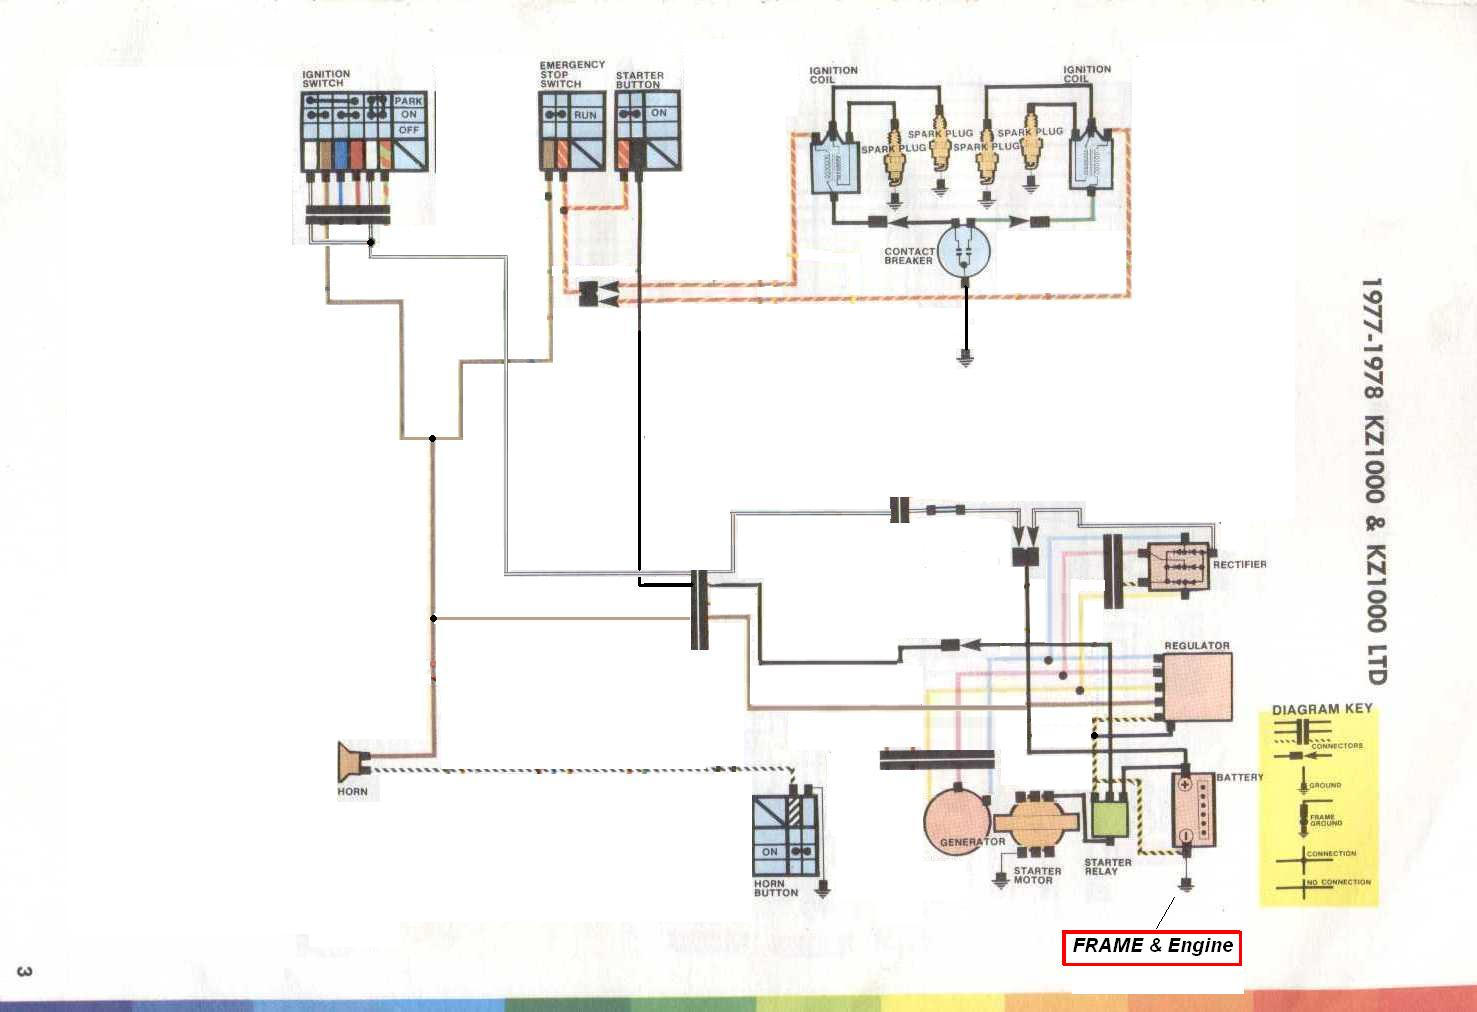 1978 Kawasaki Kz650 Wiring Diagram | Wiring Diagram on